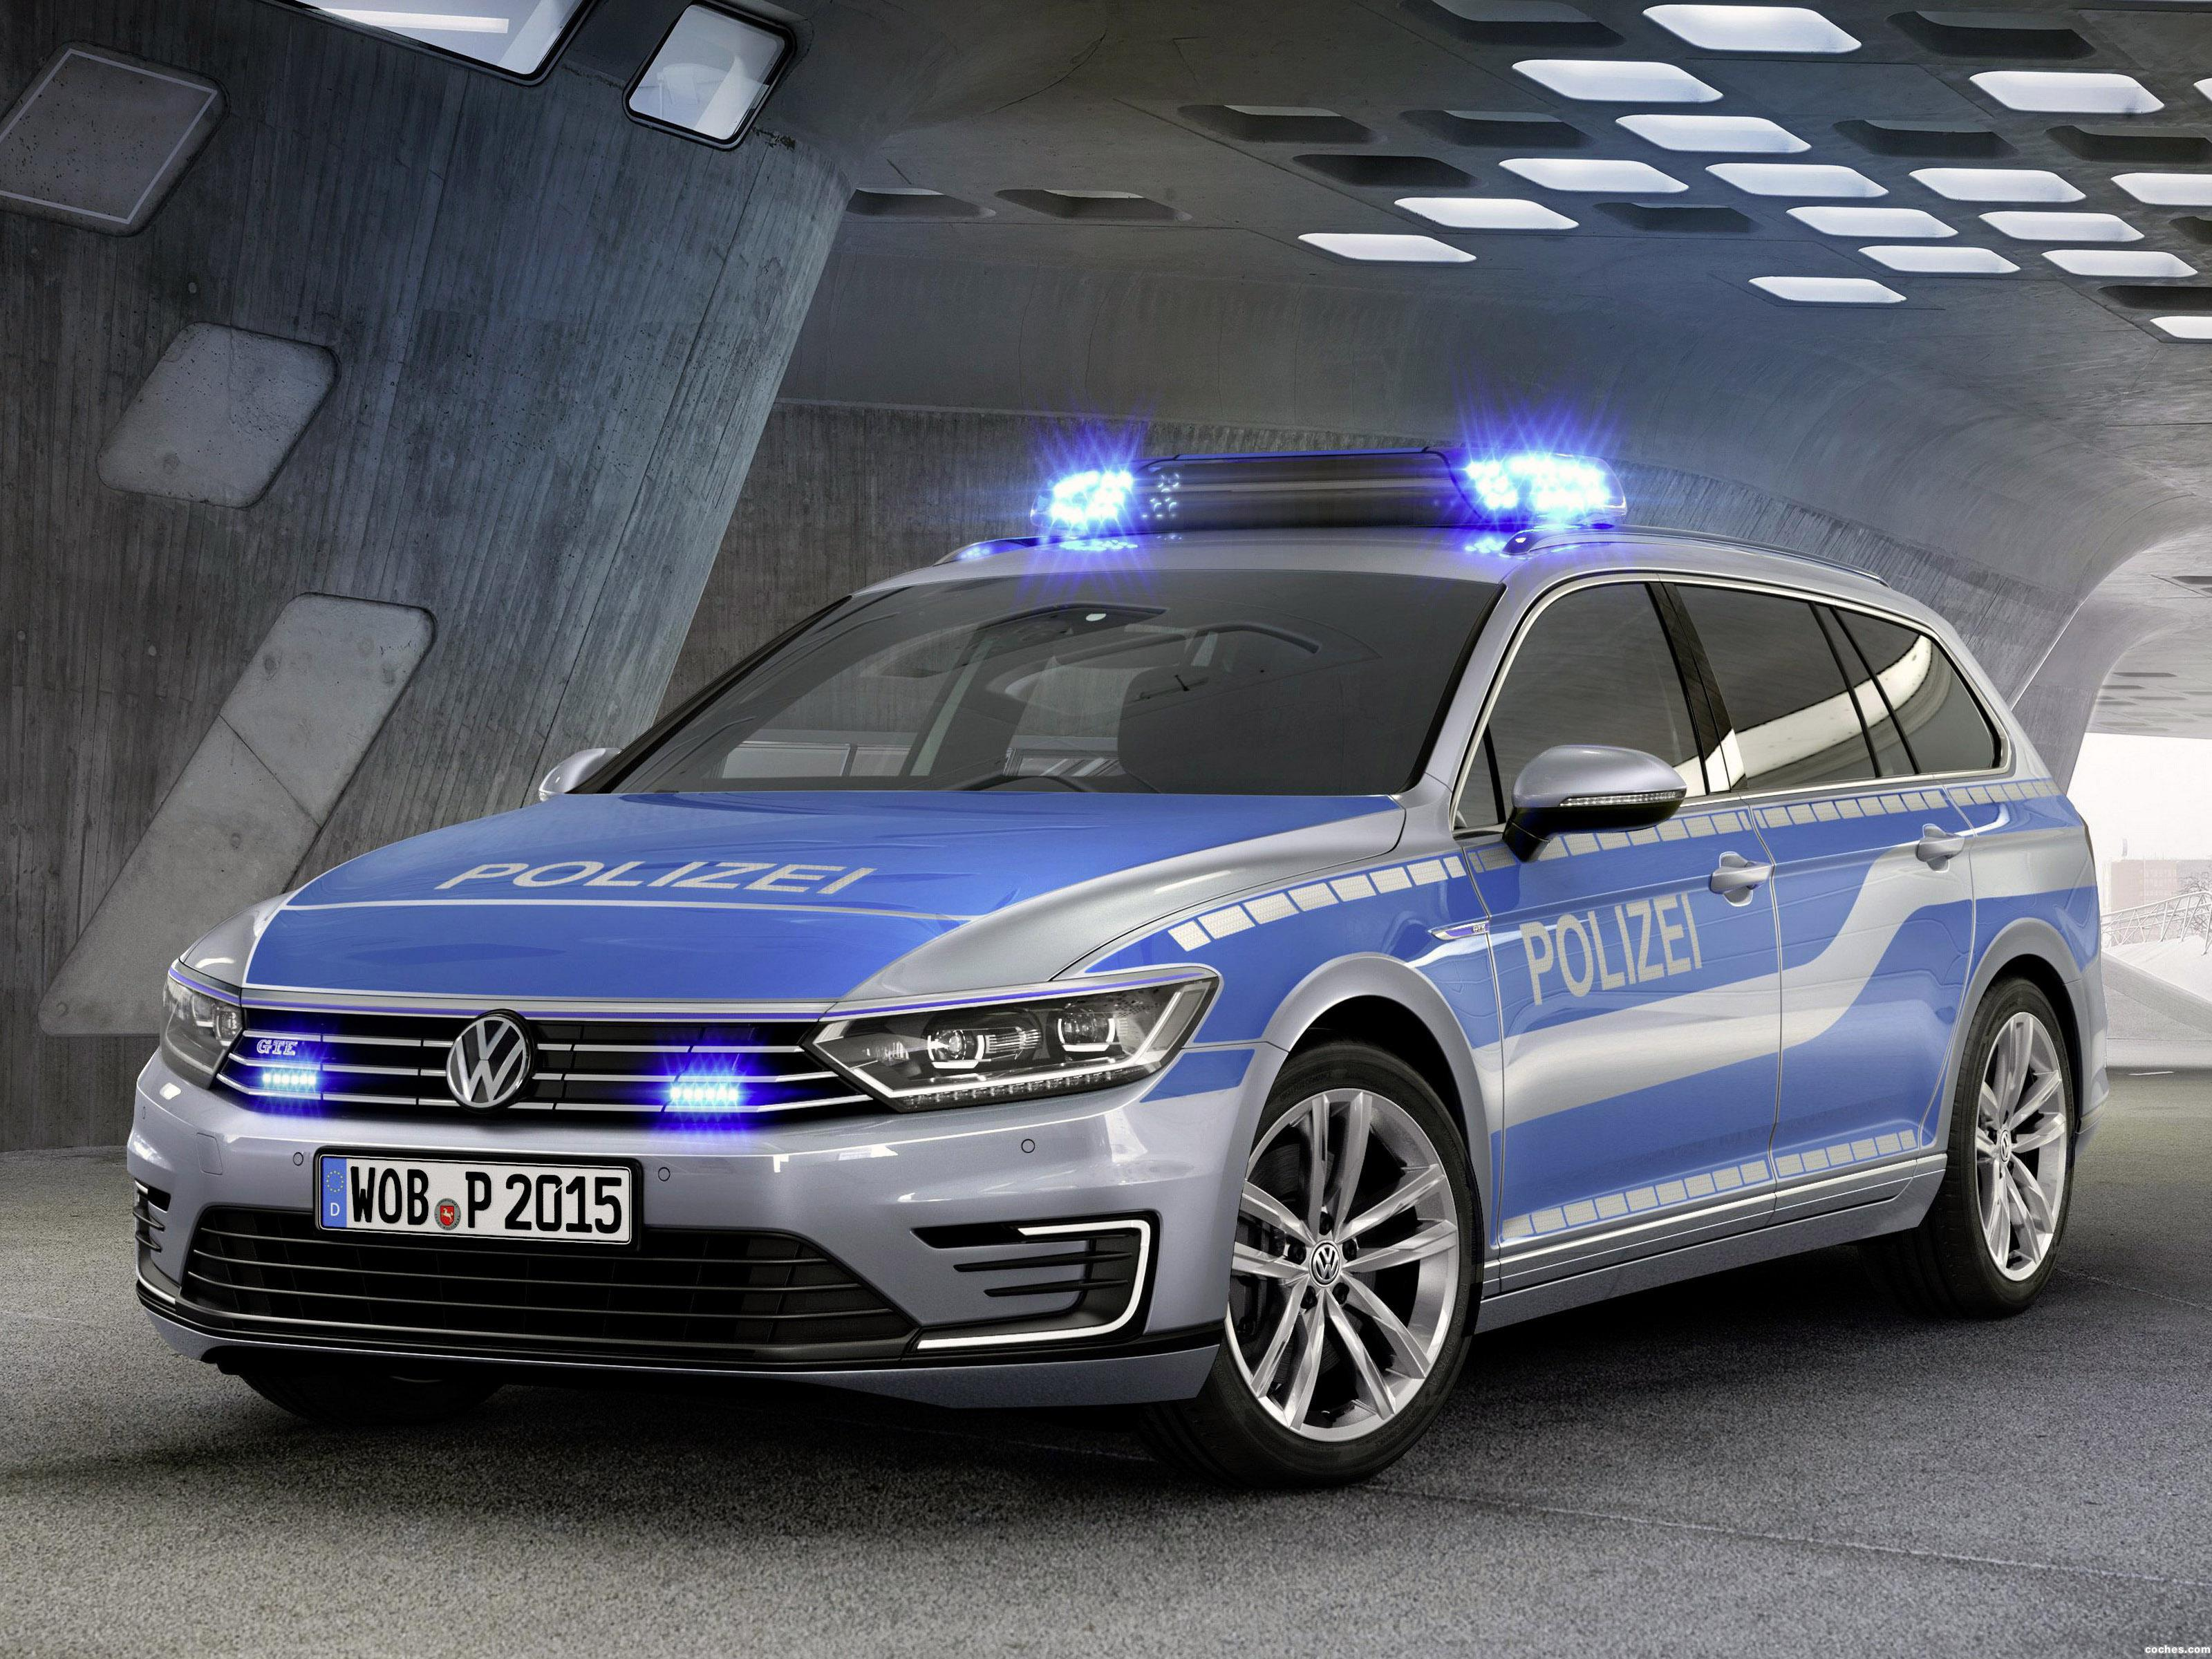 fotos de volkswagen passat variant gte plug in hybrid police car 2015. Black Bedroom Furniture Sets. Home Design Ideas